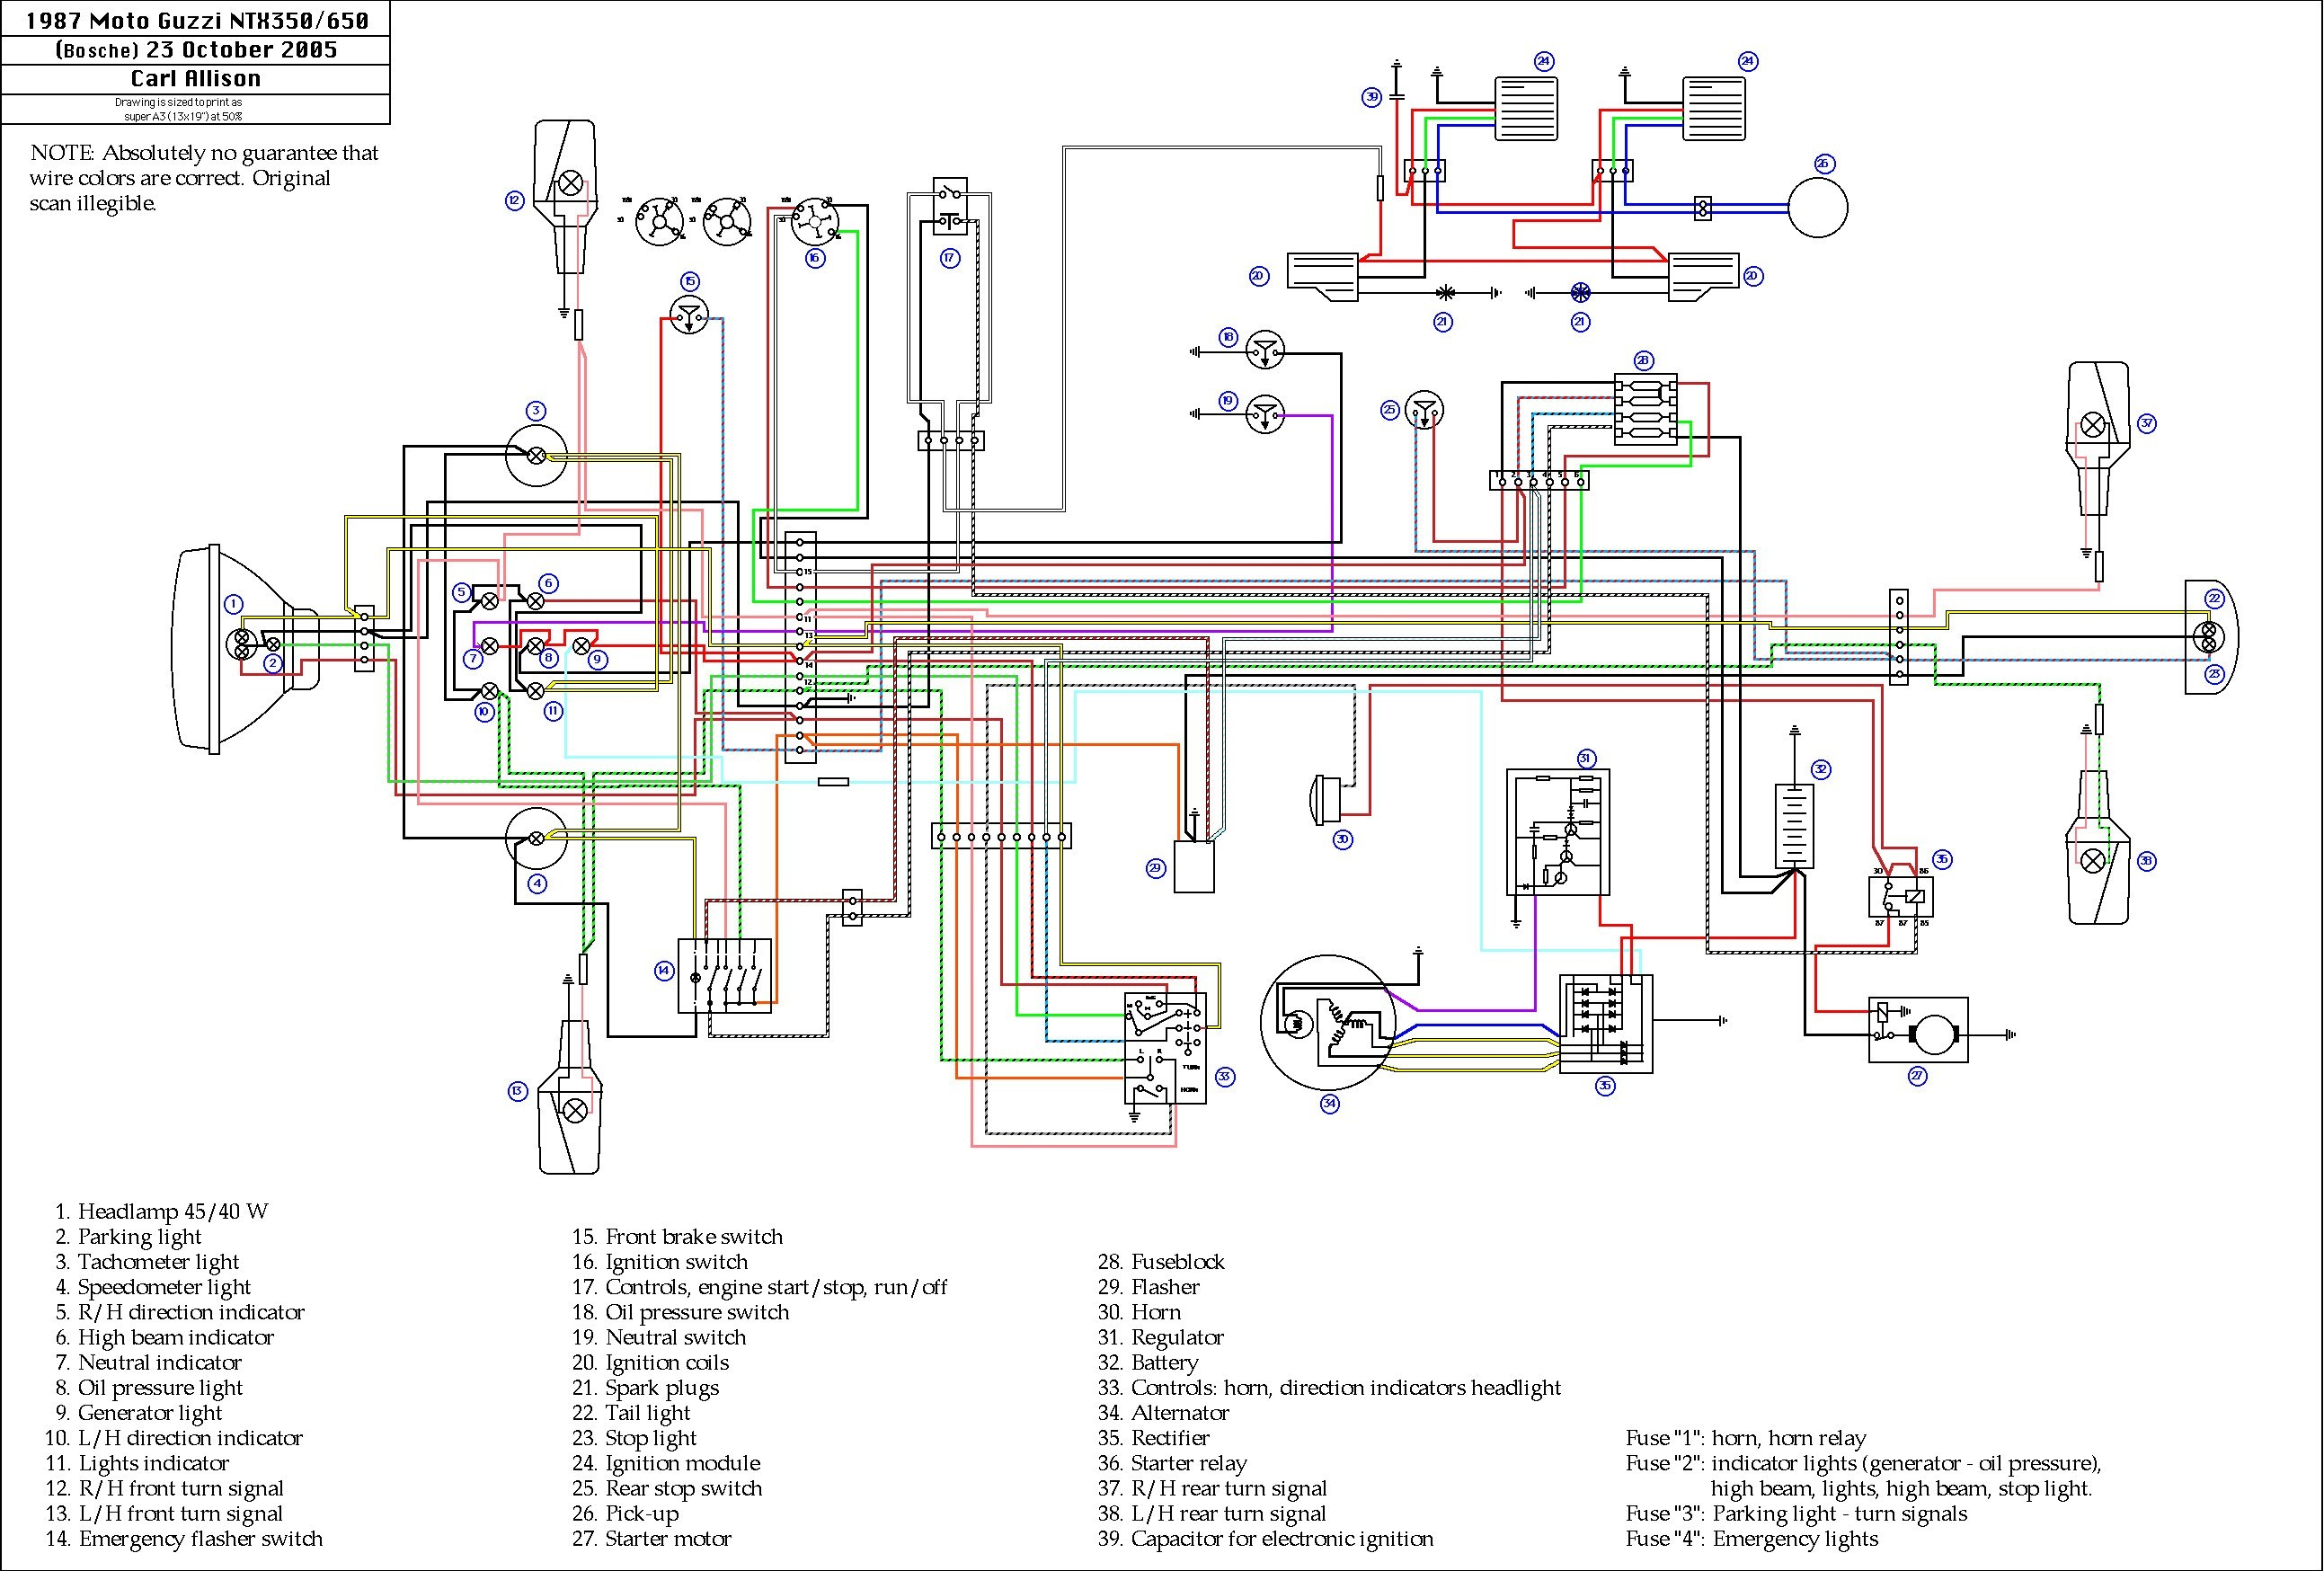 2004 Yamaha Kodiak 400 Wiring Diagram